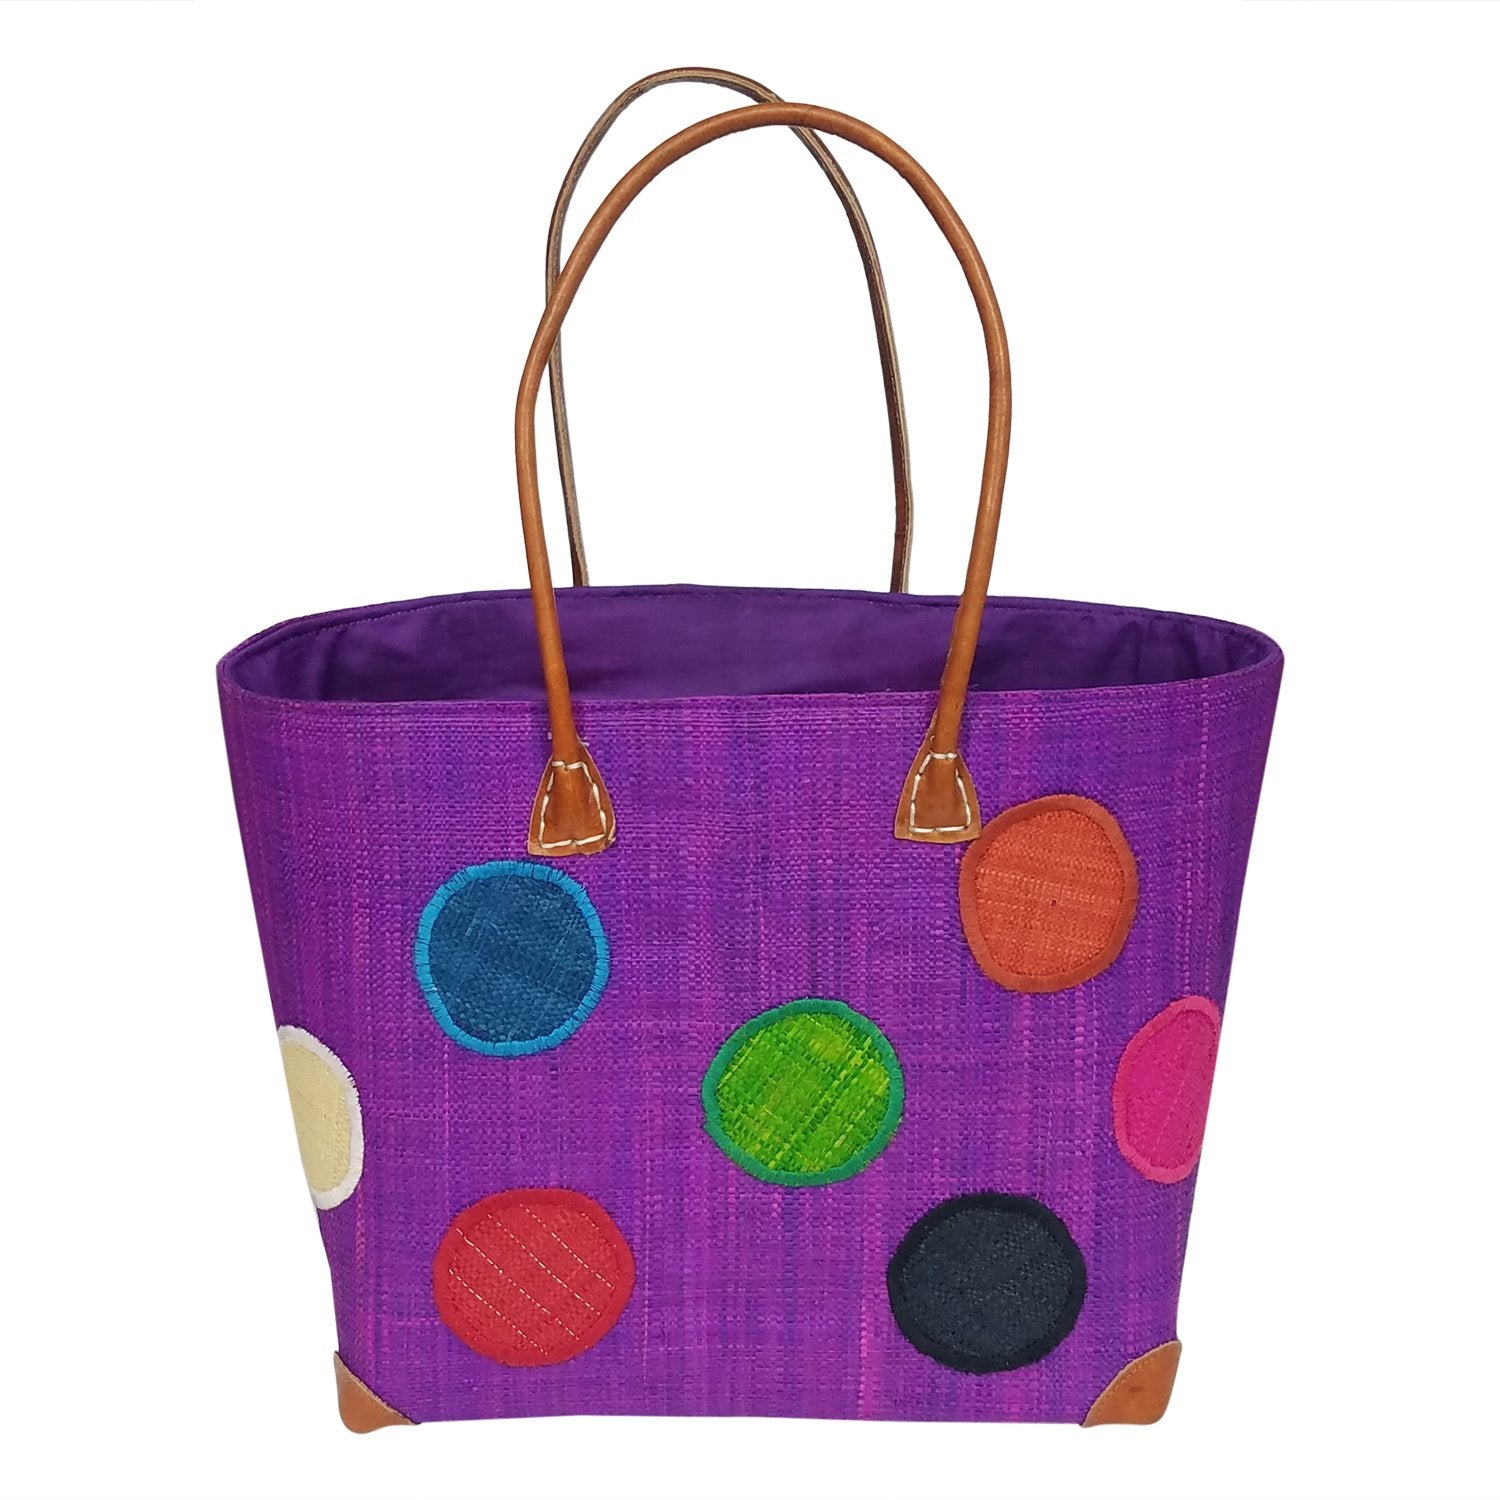 Alice: Authentic Hand Woven Madagascar Purple Polka Dot Raffia Tote Bag